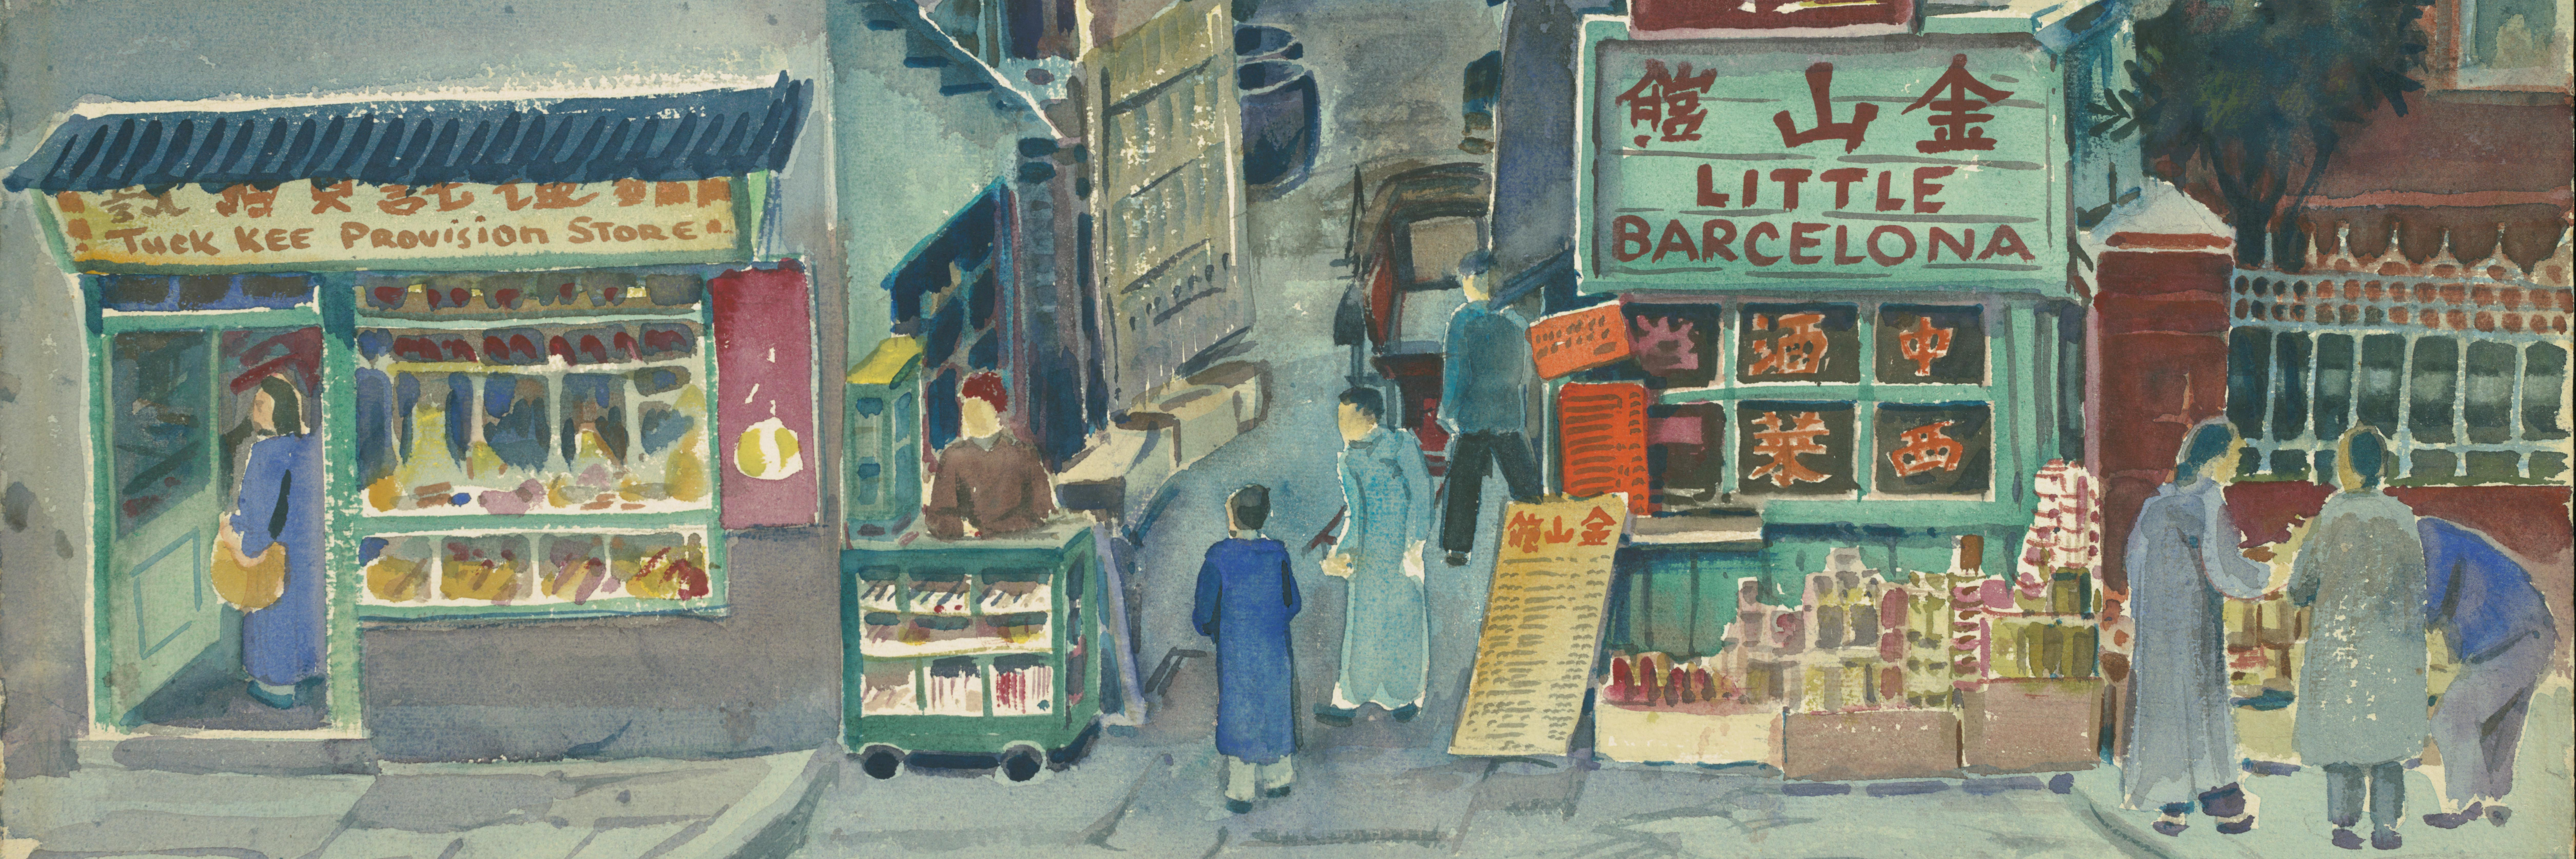 Shanghai Street Scene by David Ludwig Bloch (crop)